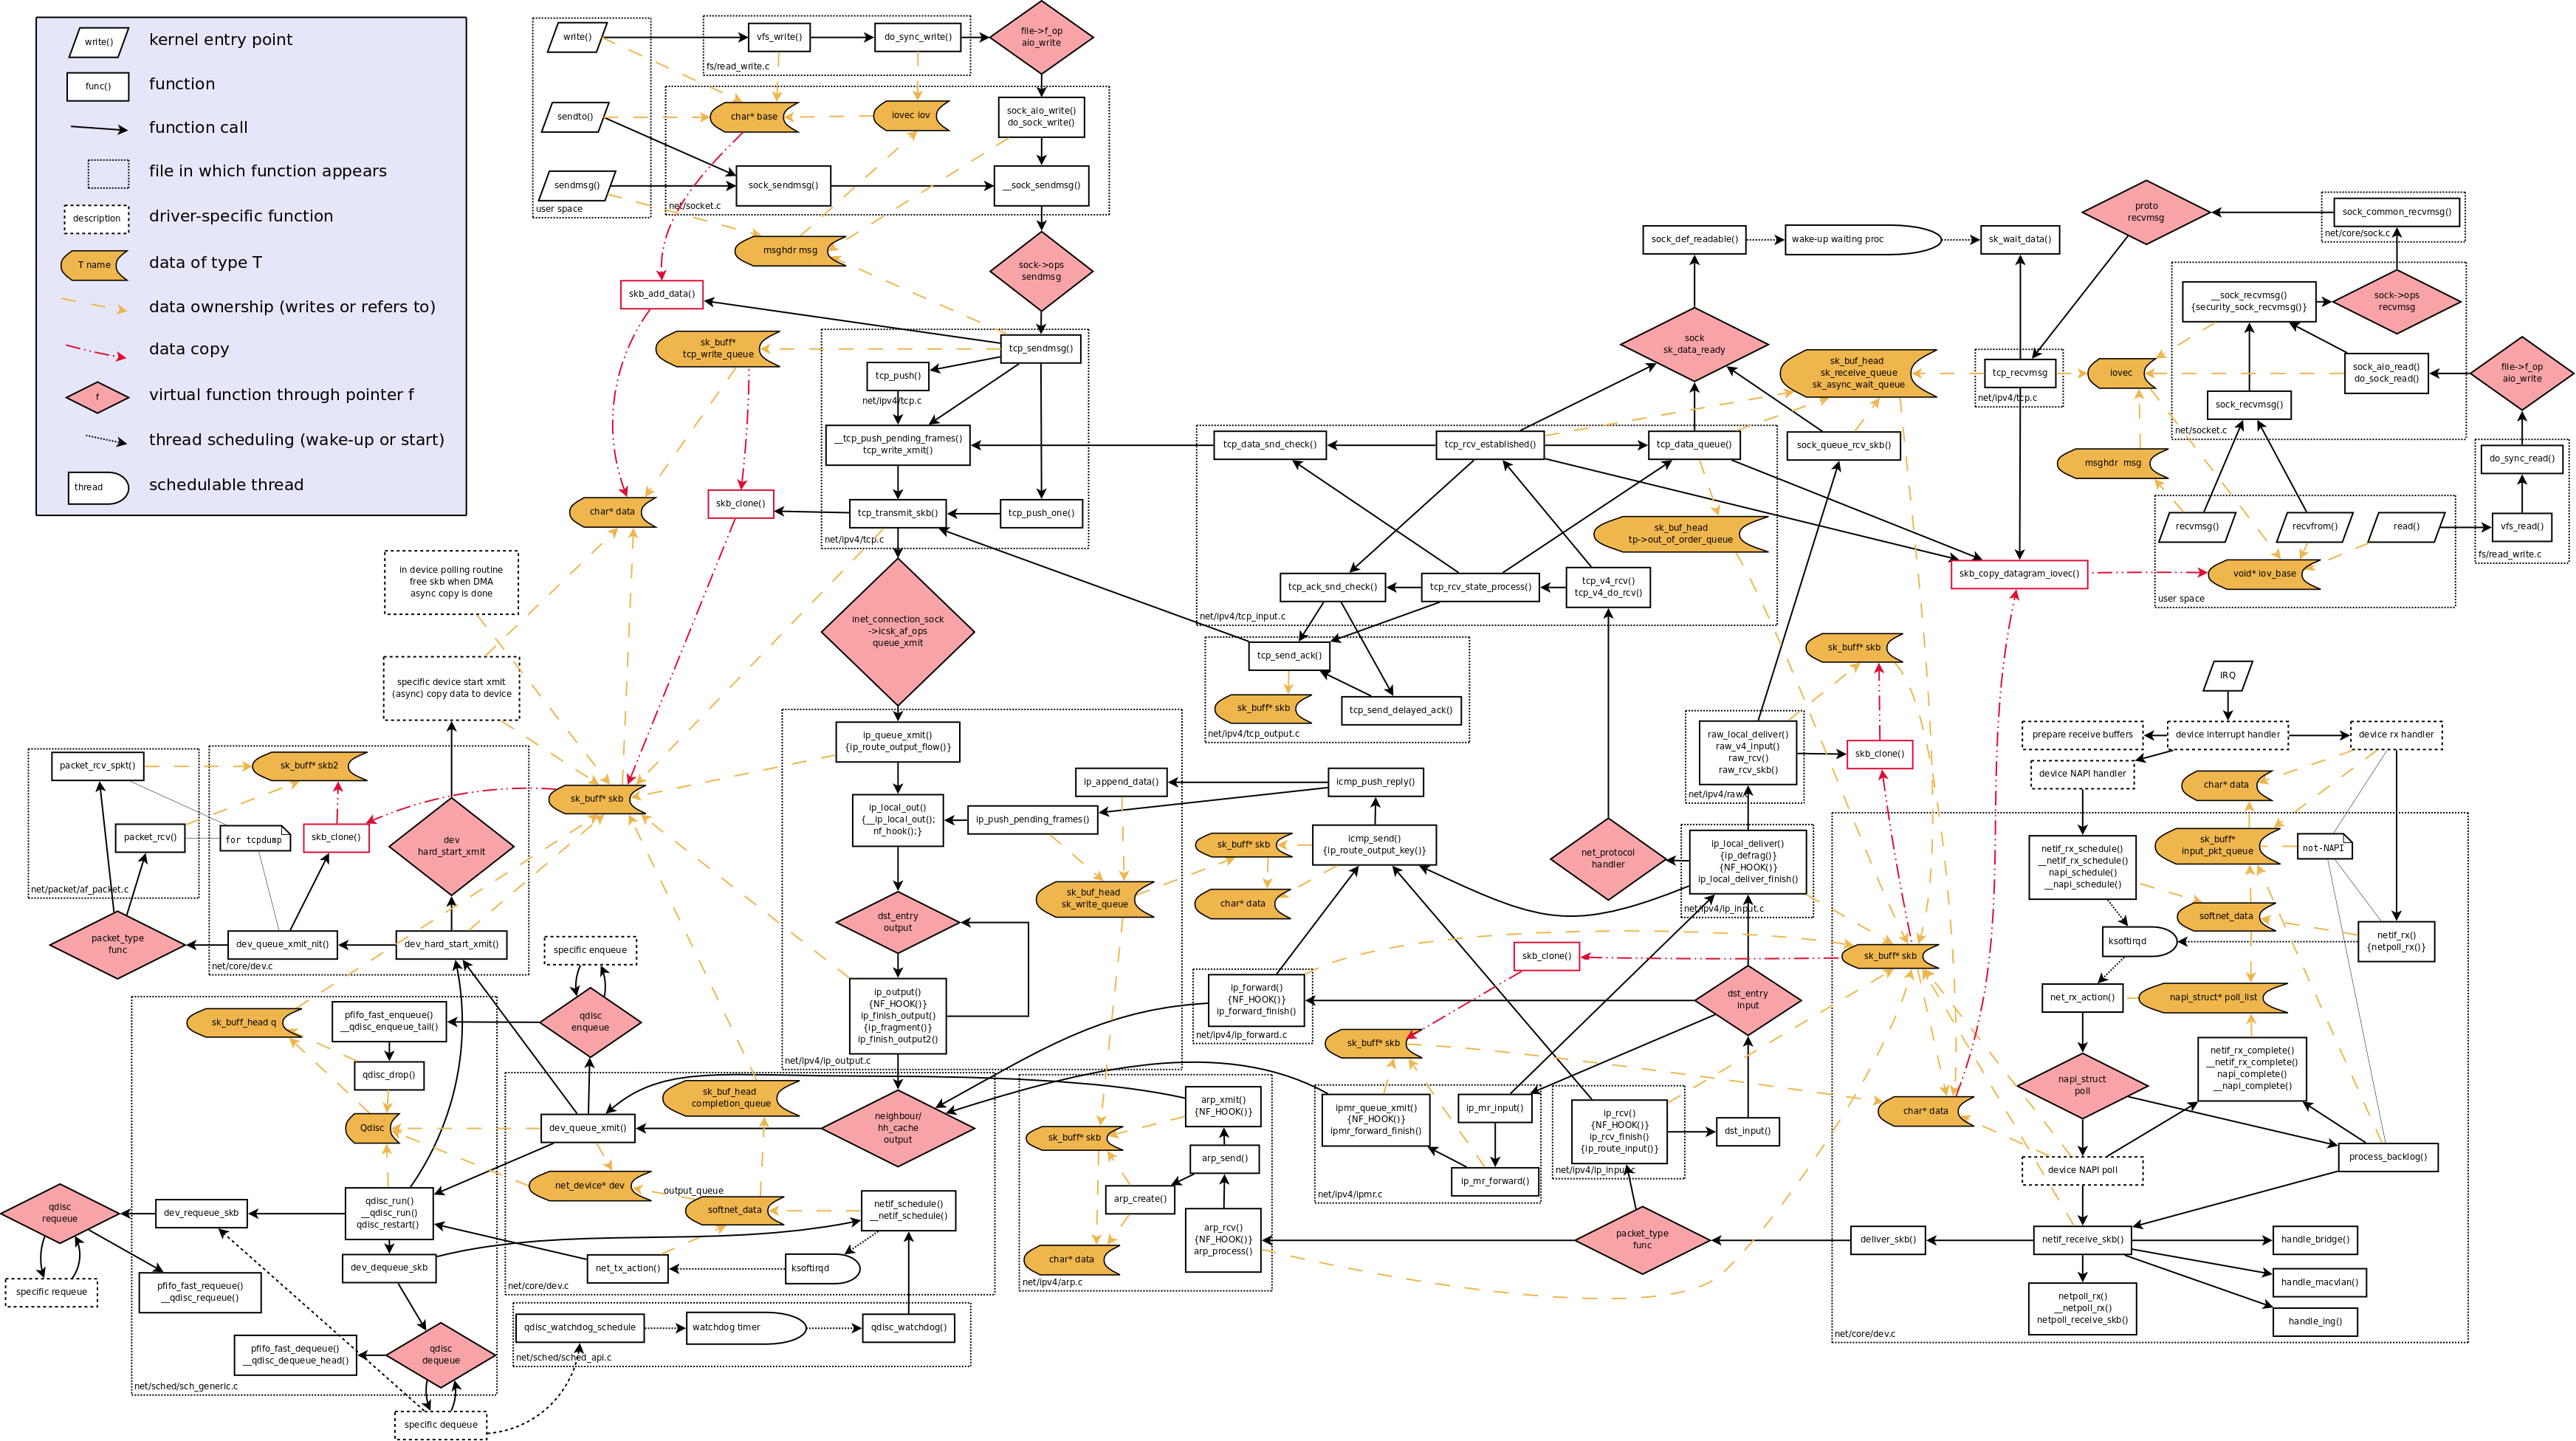 Network_data_flow_through_kernel.png